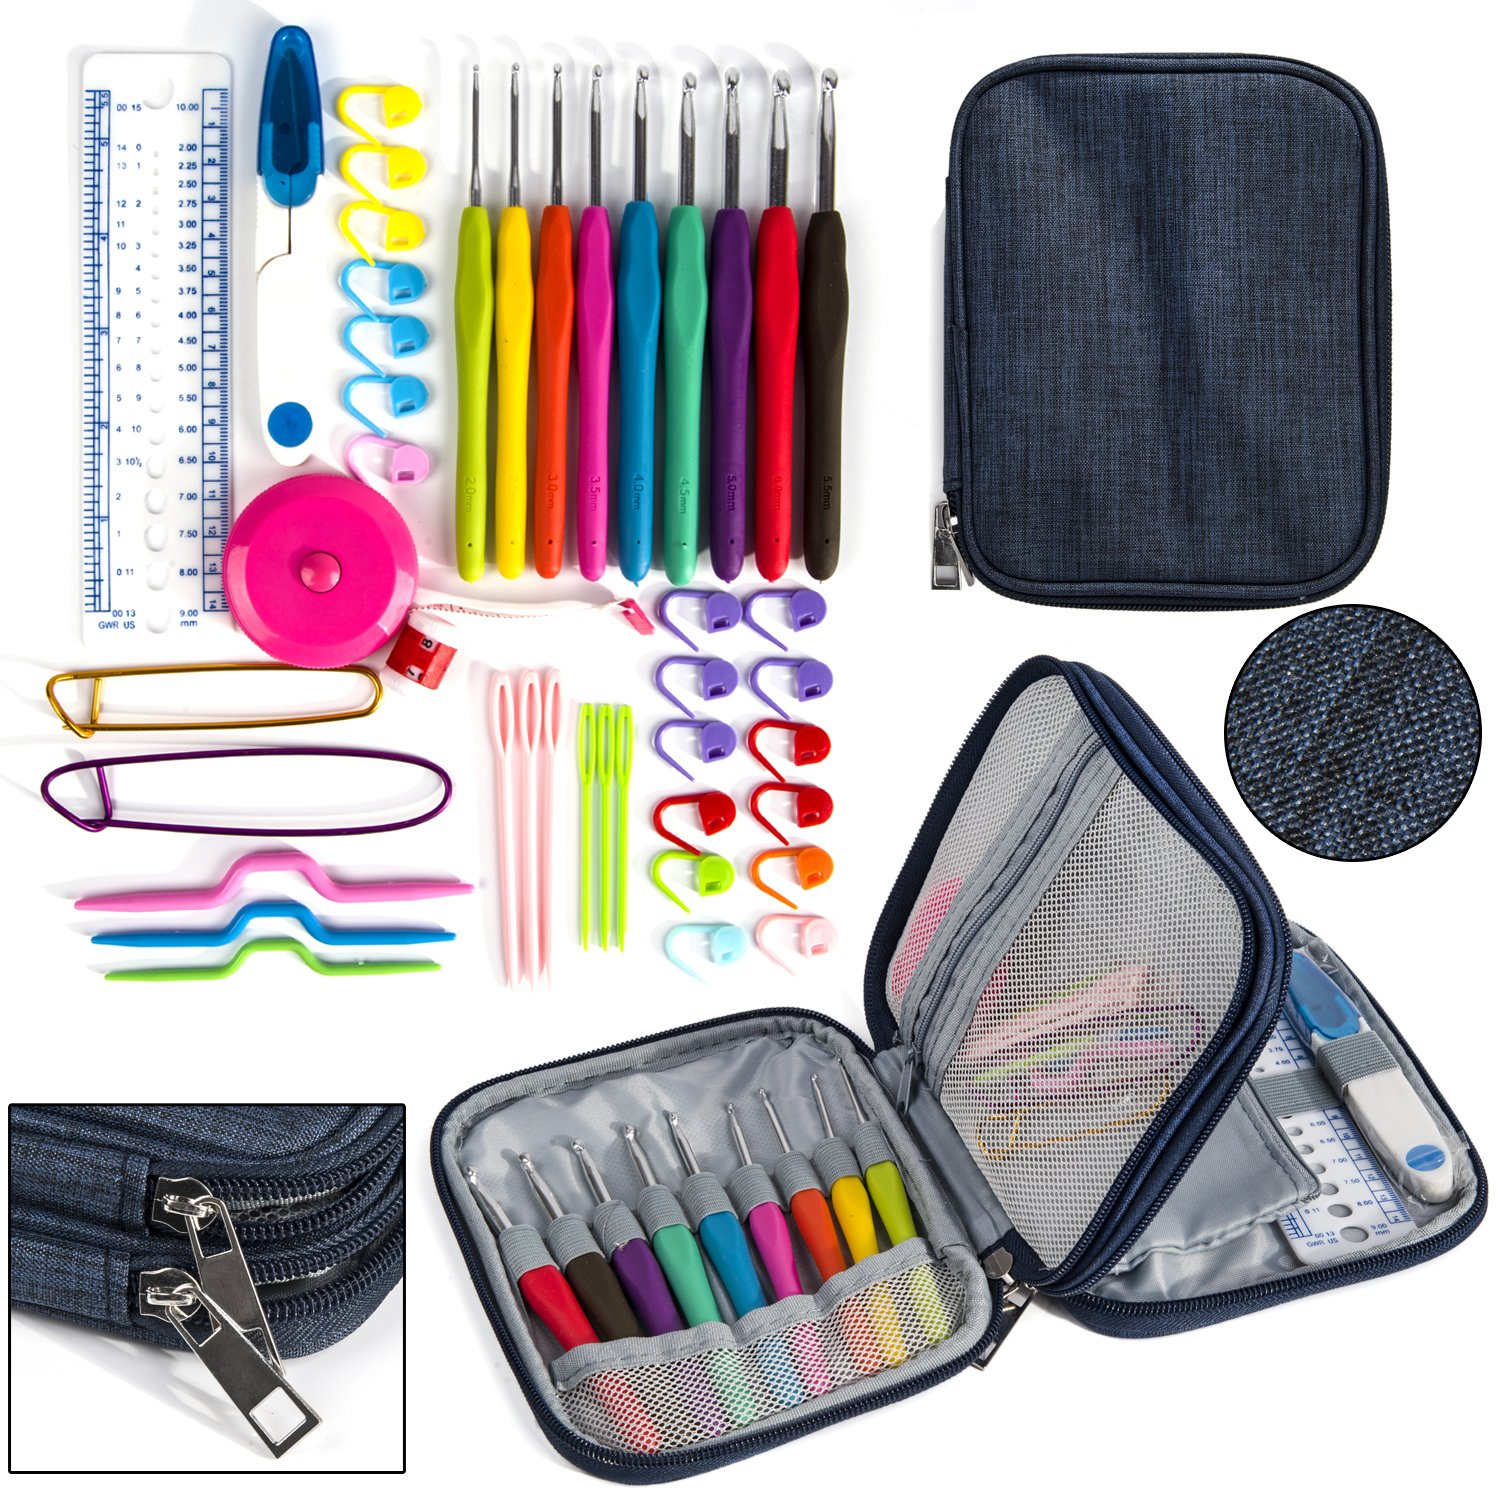 Crochet Hook Case, Organizer Zipper Bag with Web Pockets for Various Crochet Needles and Knitting Accessories